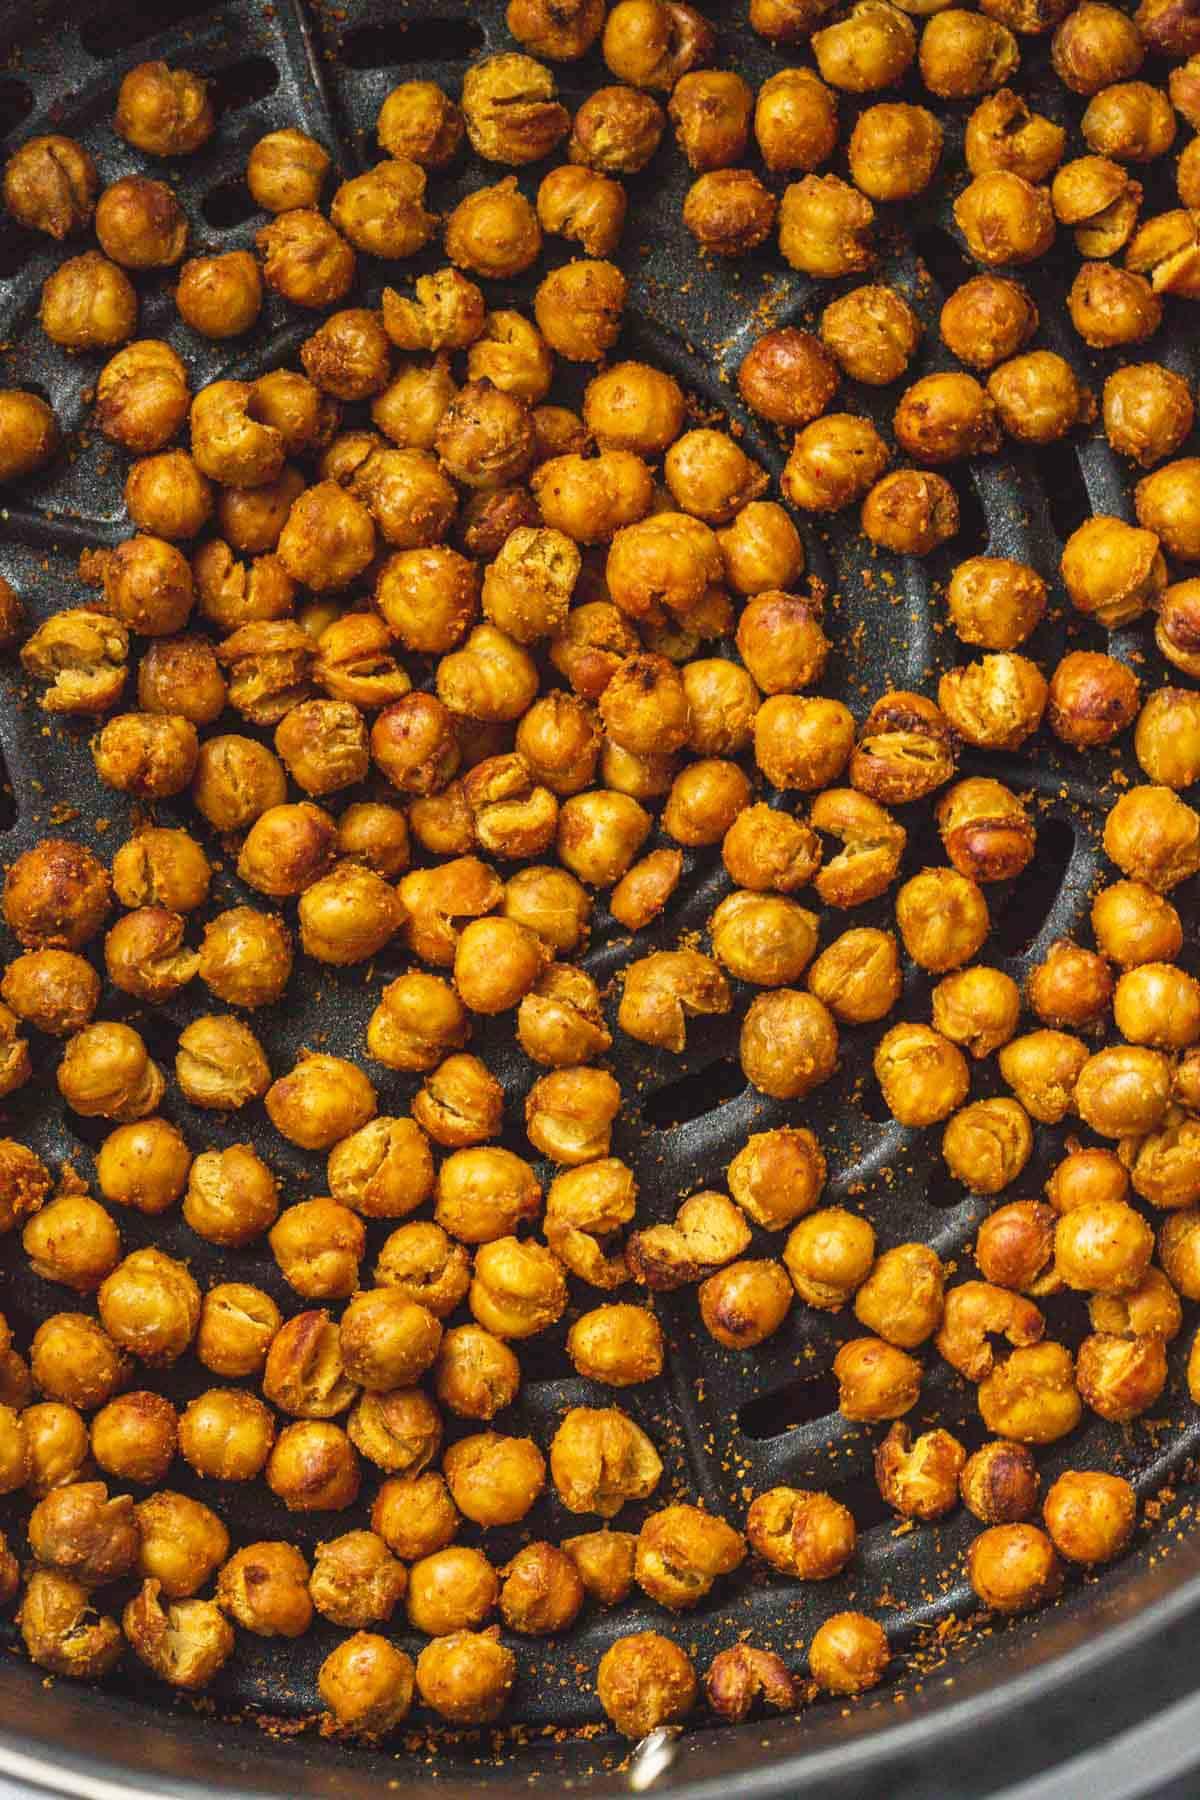 A close up image of air fryer chickpeas that are super crunchy in an air fryer basket.